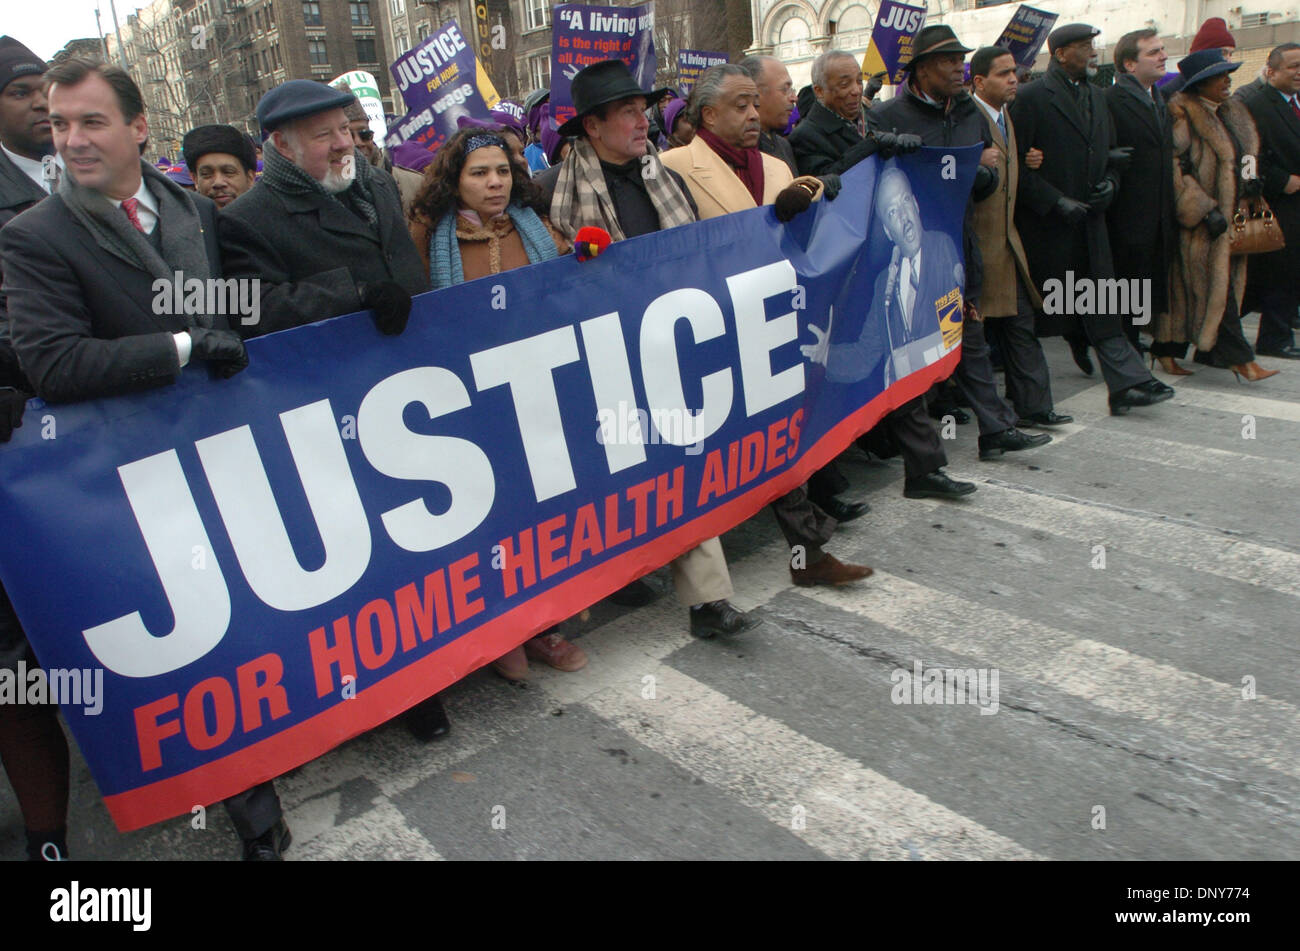 Jan 16, 2006; Manhattan, New York, USA; Nassau County Executive Tom Suozzi (L), 1199 SEIU President Dennis Rivera (4th from L) and Reverend Al Sharpton (5th from L) march as thousands of members and supporters of 1199 Service Employees International Union (SEIU) honor Dr. Martin Luther King with a march and rally in Harlem demanding justice for home health aides. 30,000 Aides provi - Stock Image